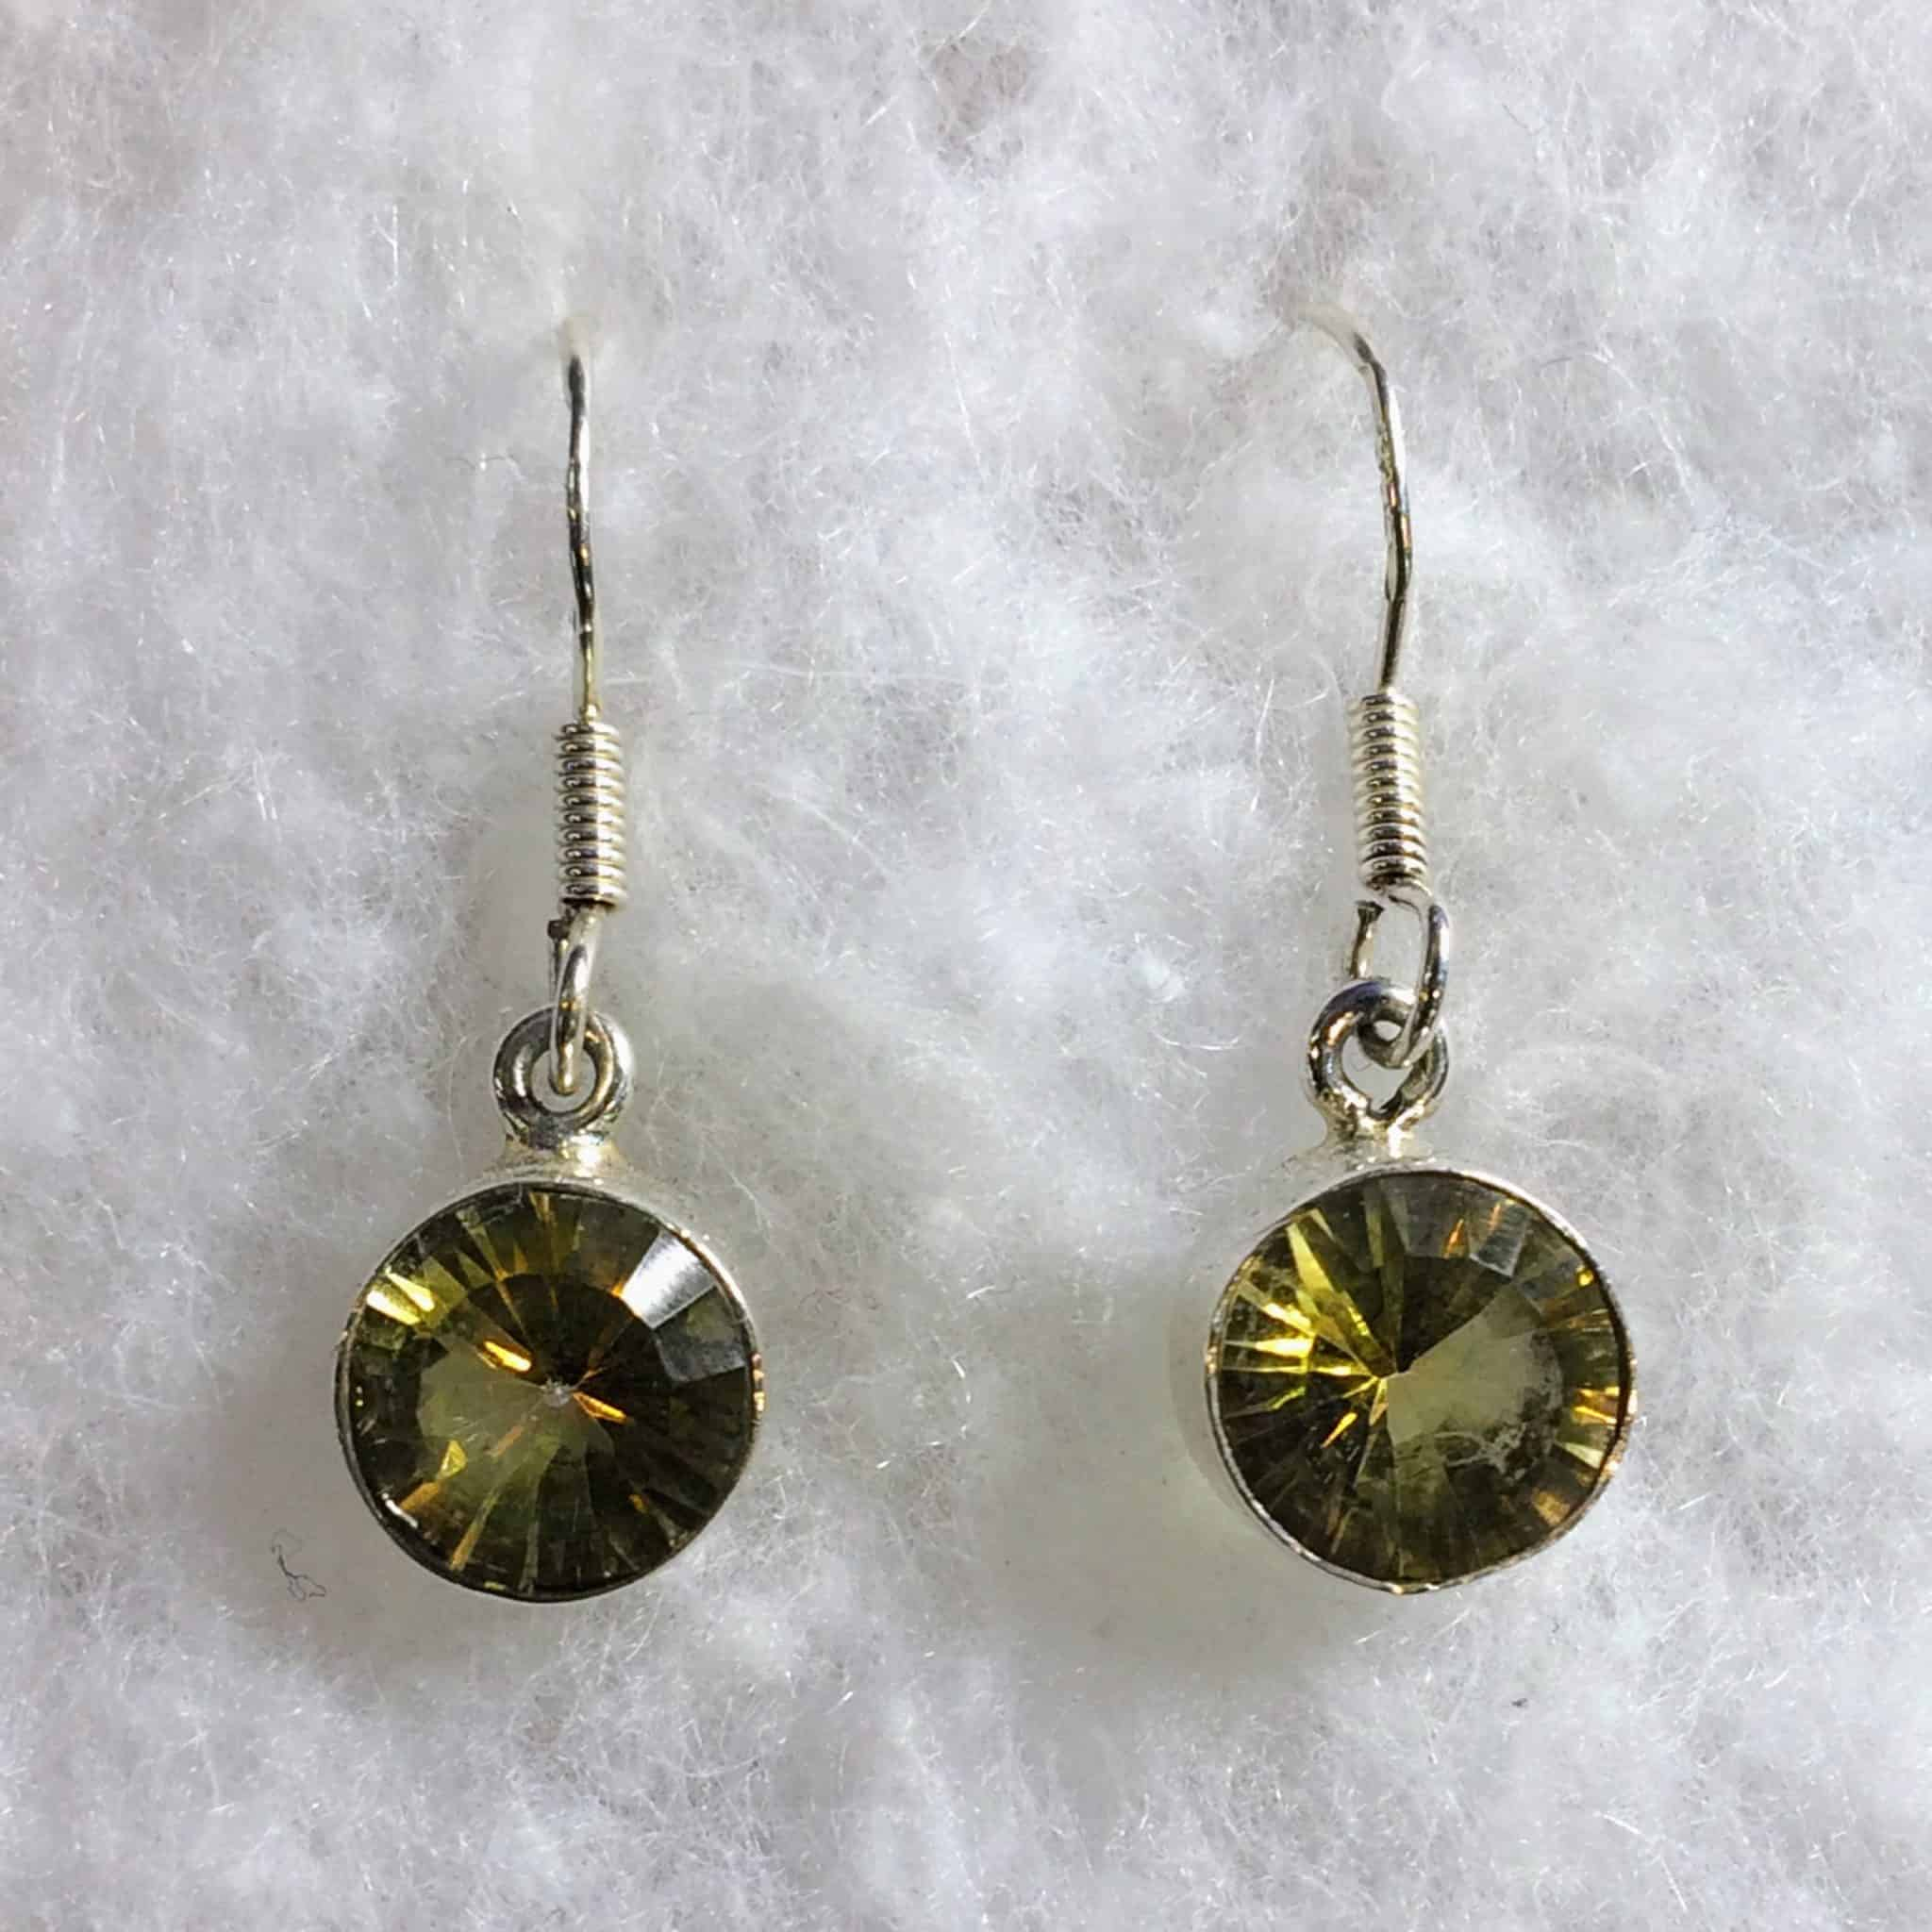 buy product on earrings topaz generous leverback mystic genuine international yeidid by sterling in silver cttw opensky solid